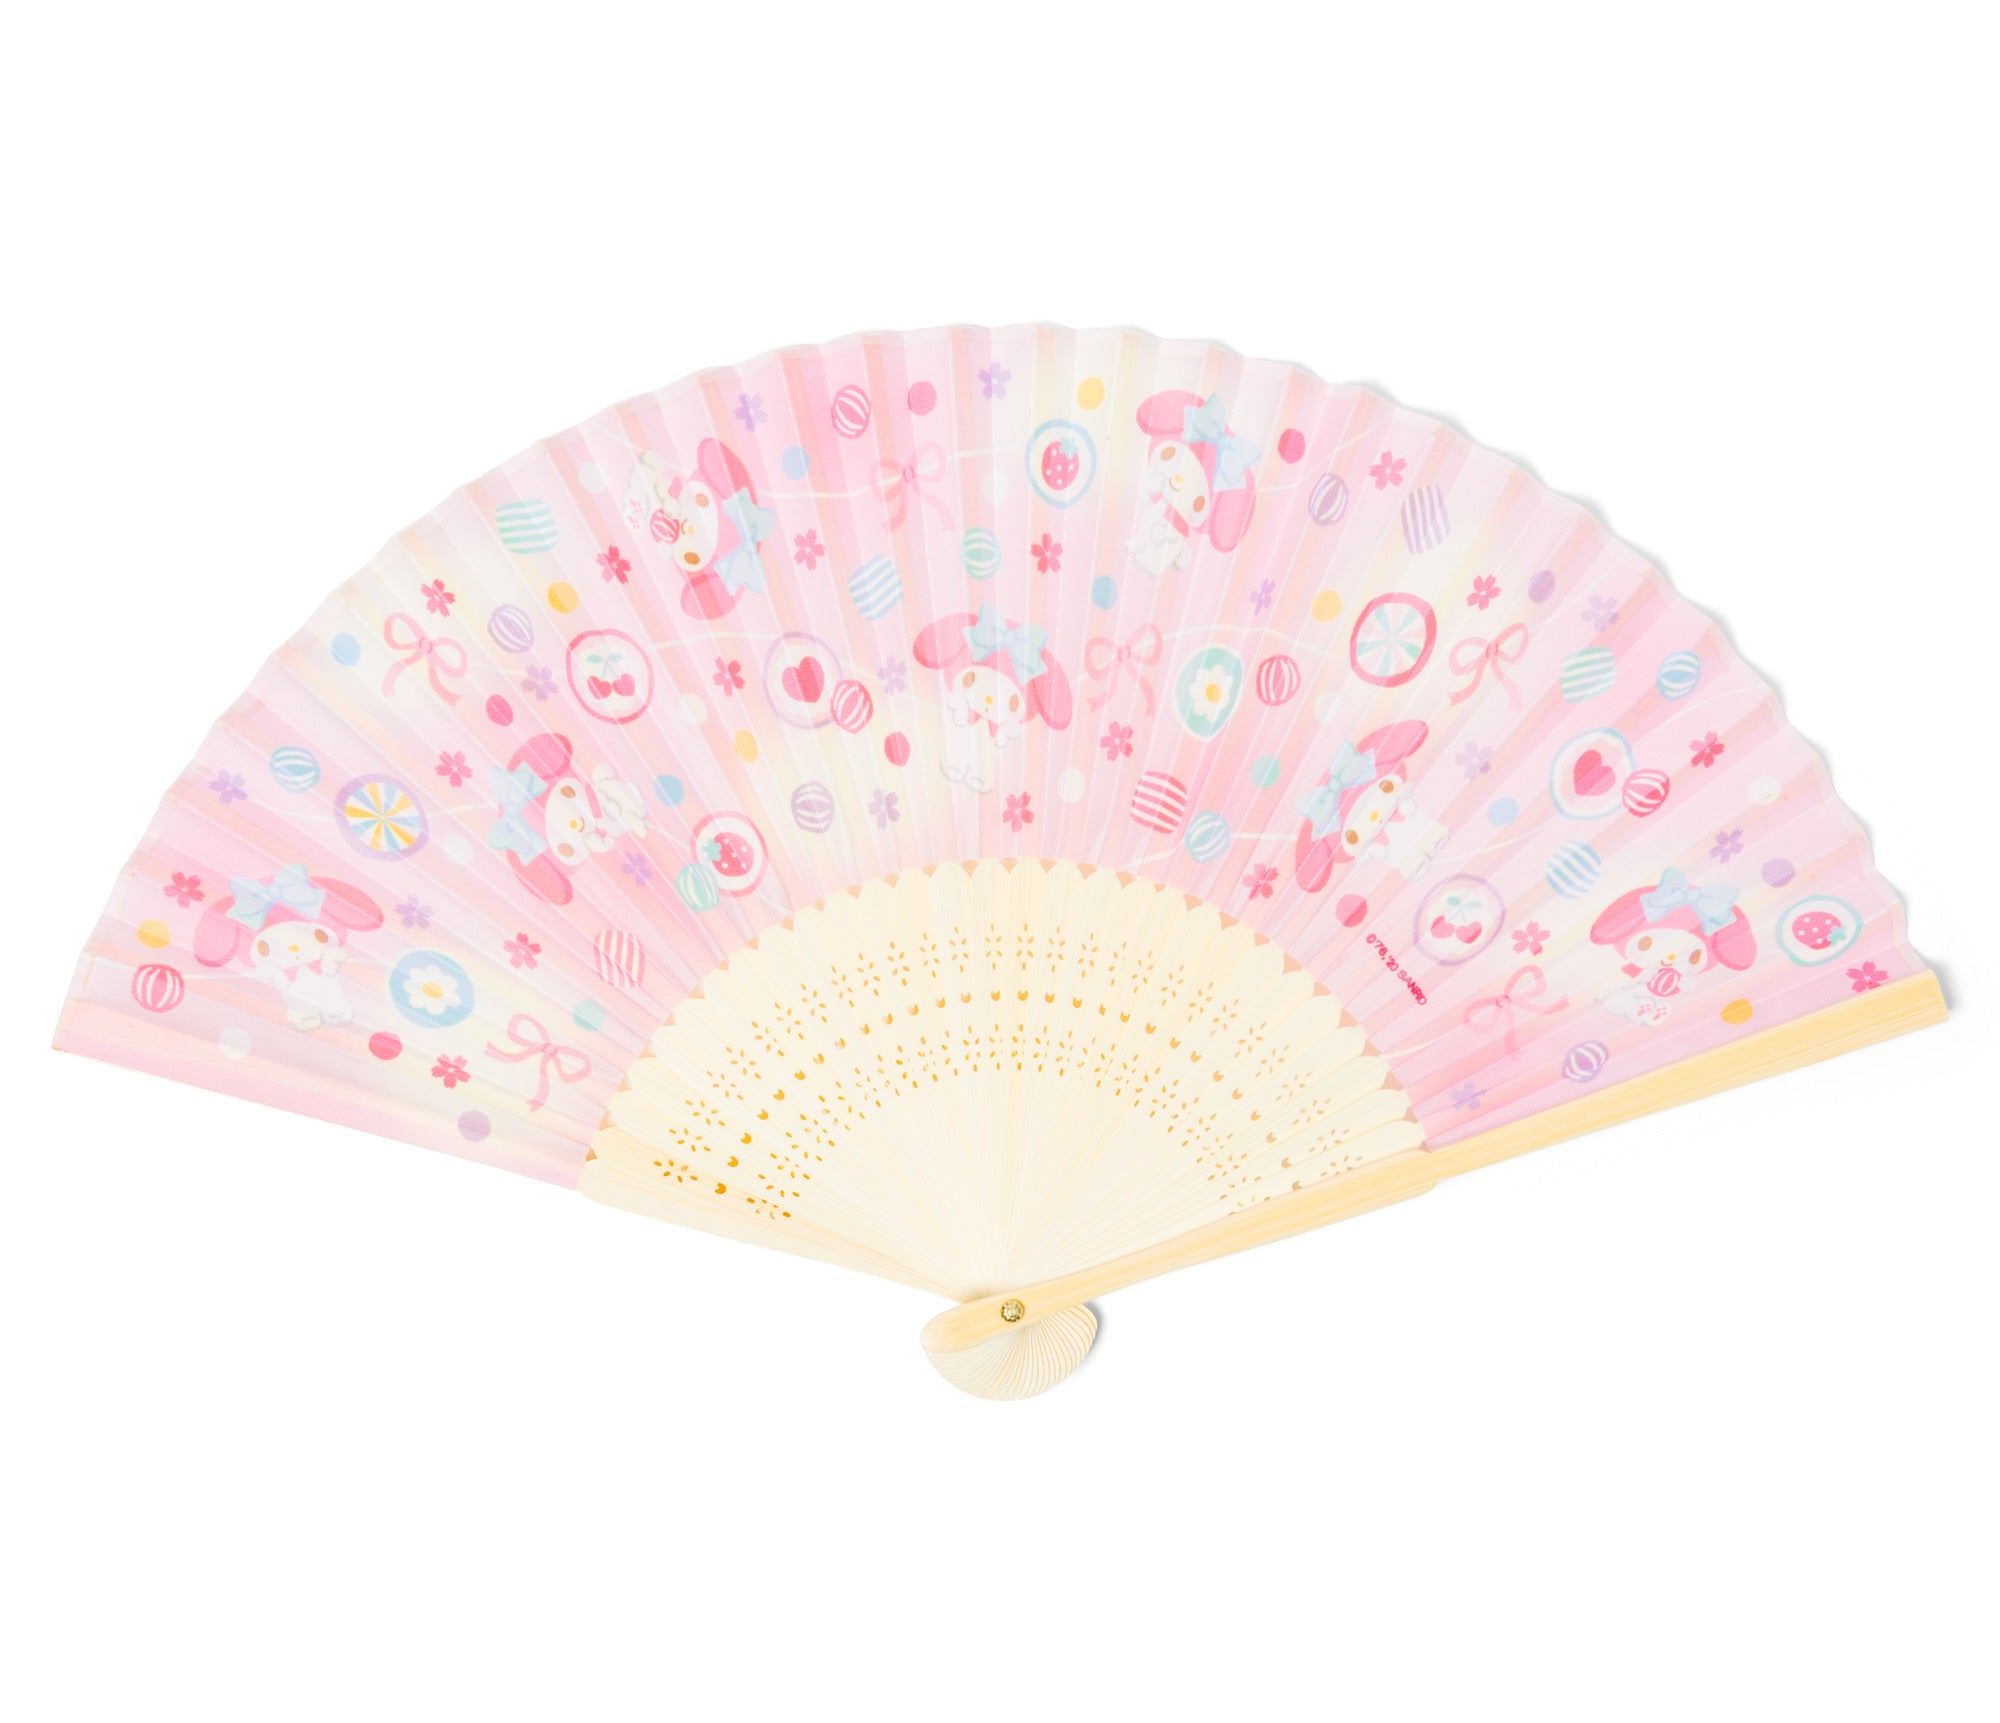 My Melody Japanese Folding Fan Ribbons